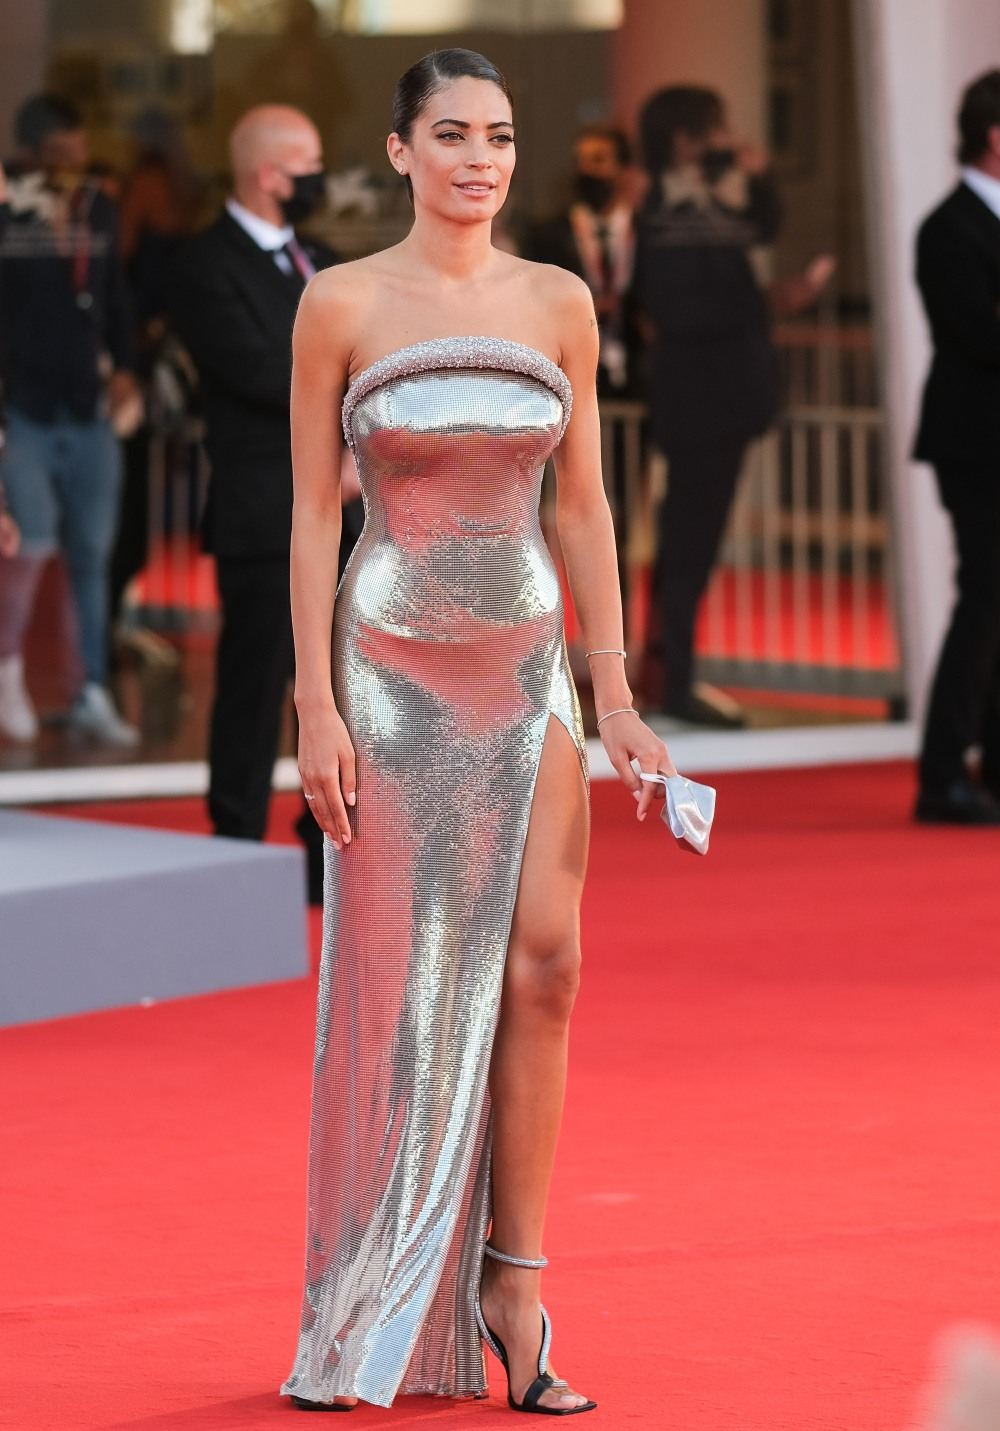 Elodie poses on the red carpet at Opening Ceremony for the 77th Venice International Film Festival ( Berlinale ) on Wednesday 2 September 2020